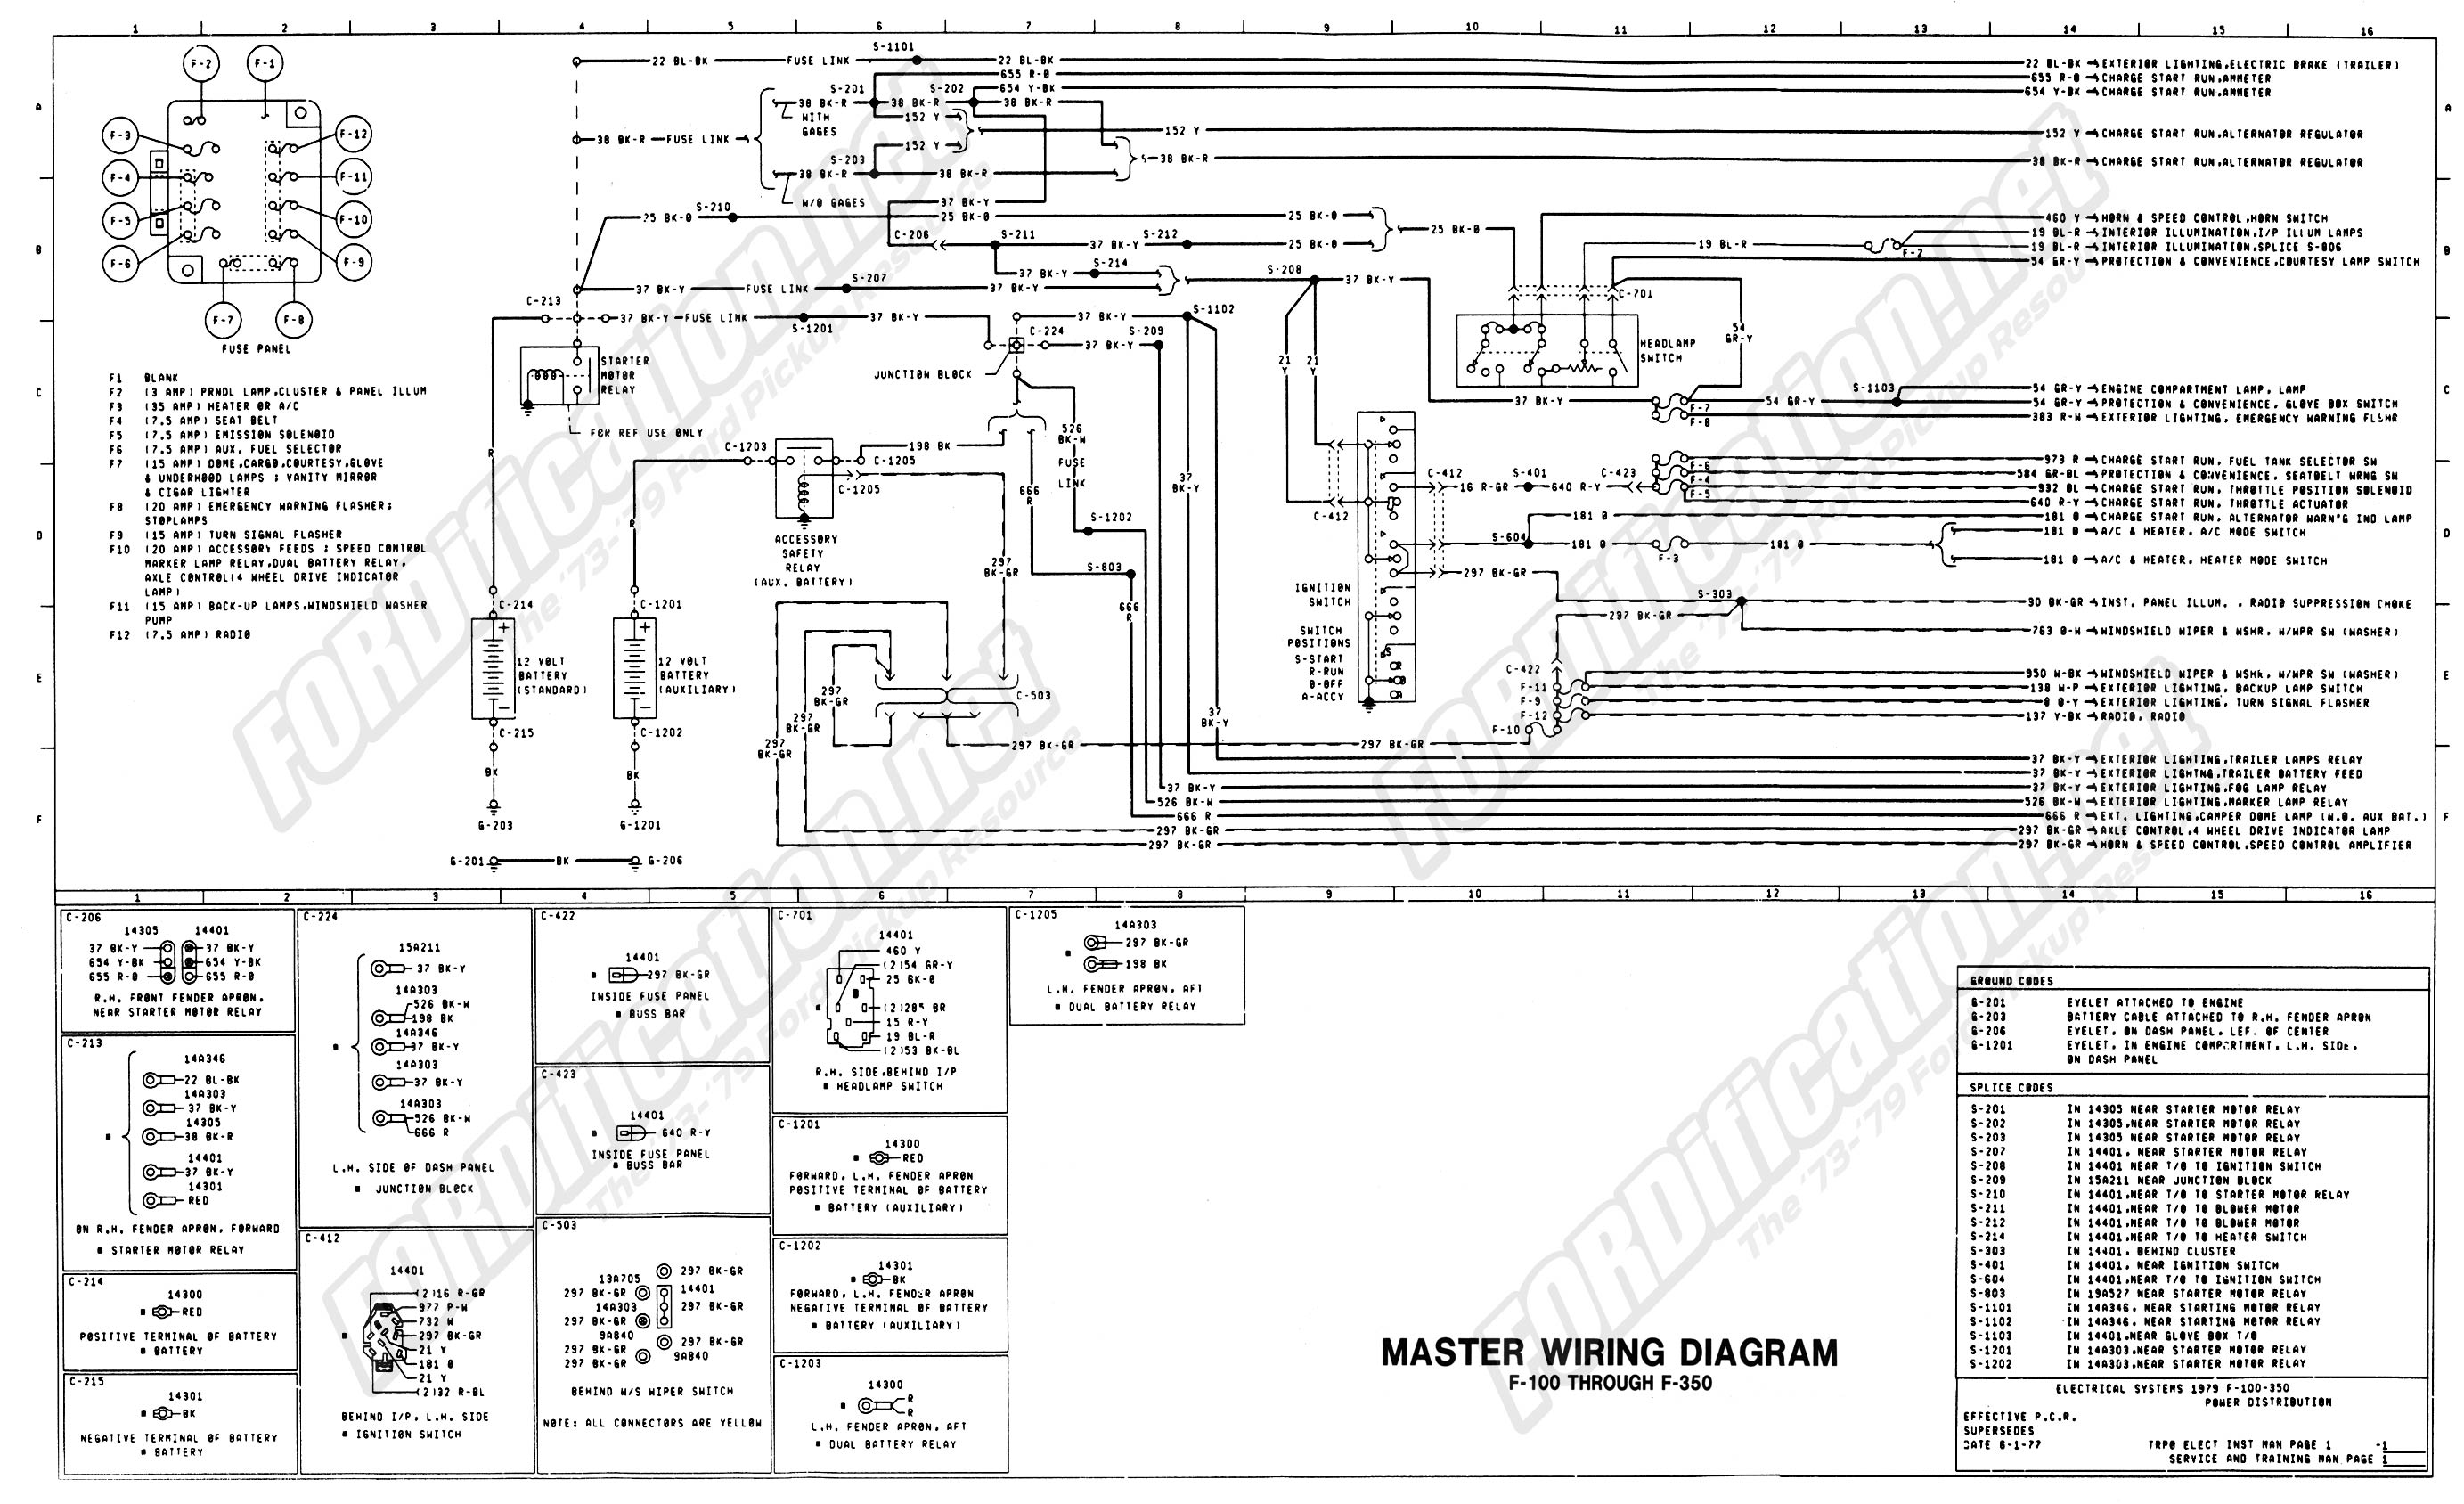 wiring_79master_1of9 1973 1979 ford truck wiring diagrams & schematics fordification net 1979 Corvette Fuse Box Diagram at mifinder.co